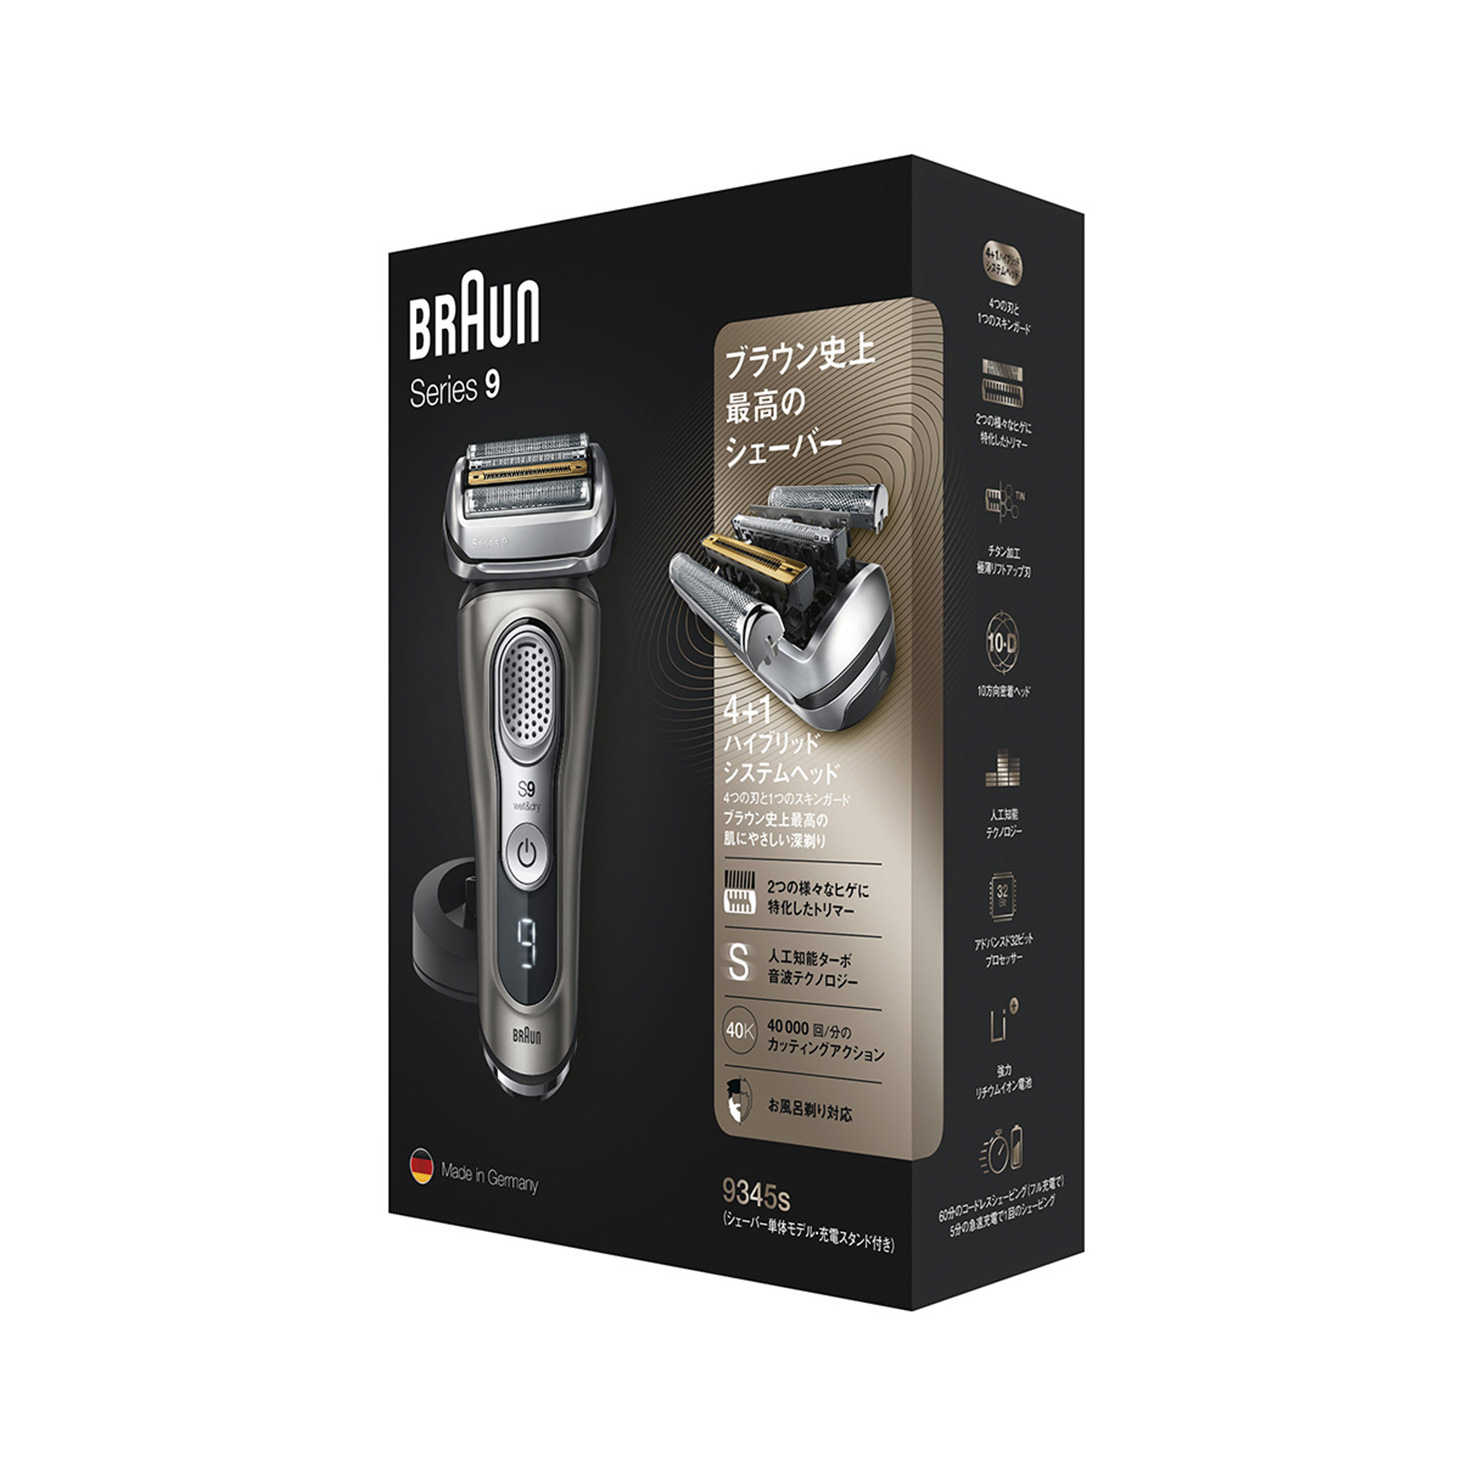 Series 9 9345s shaver - Packaging